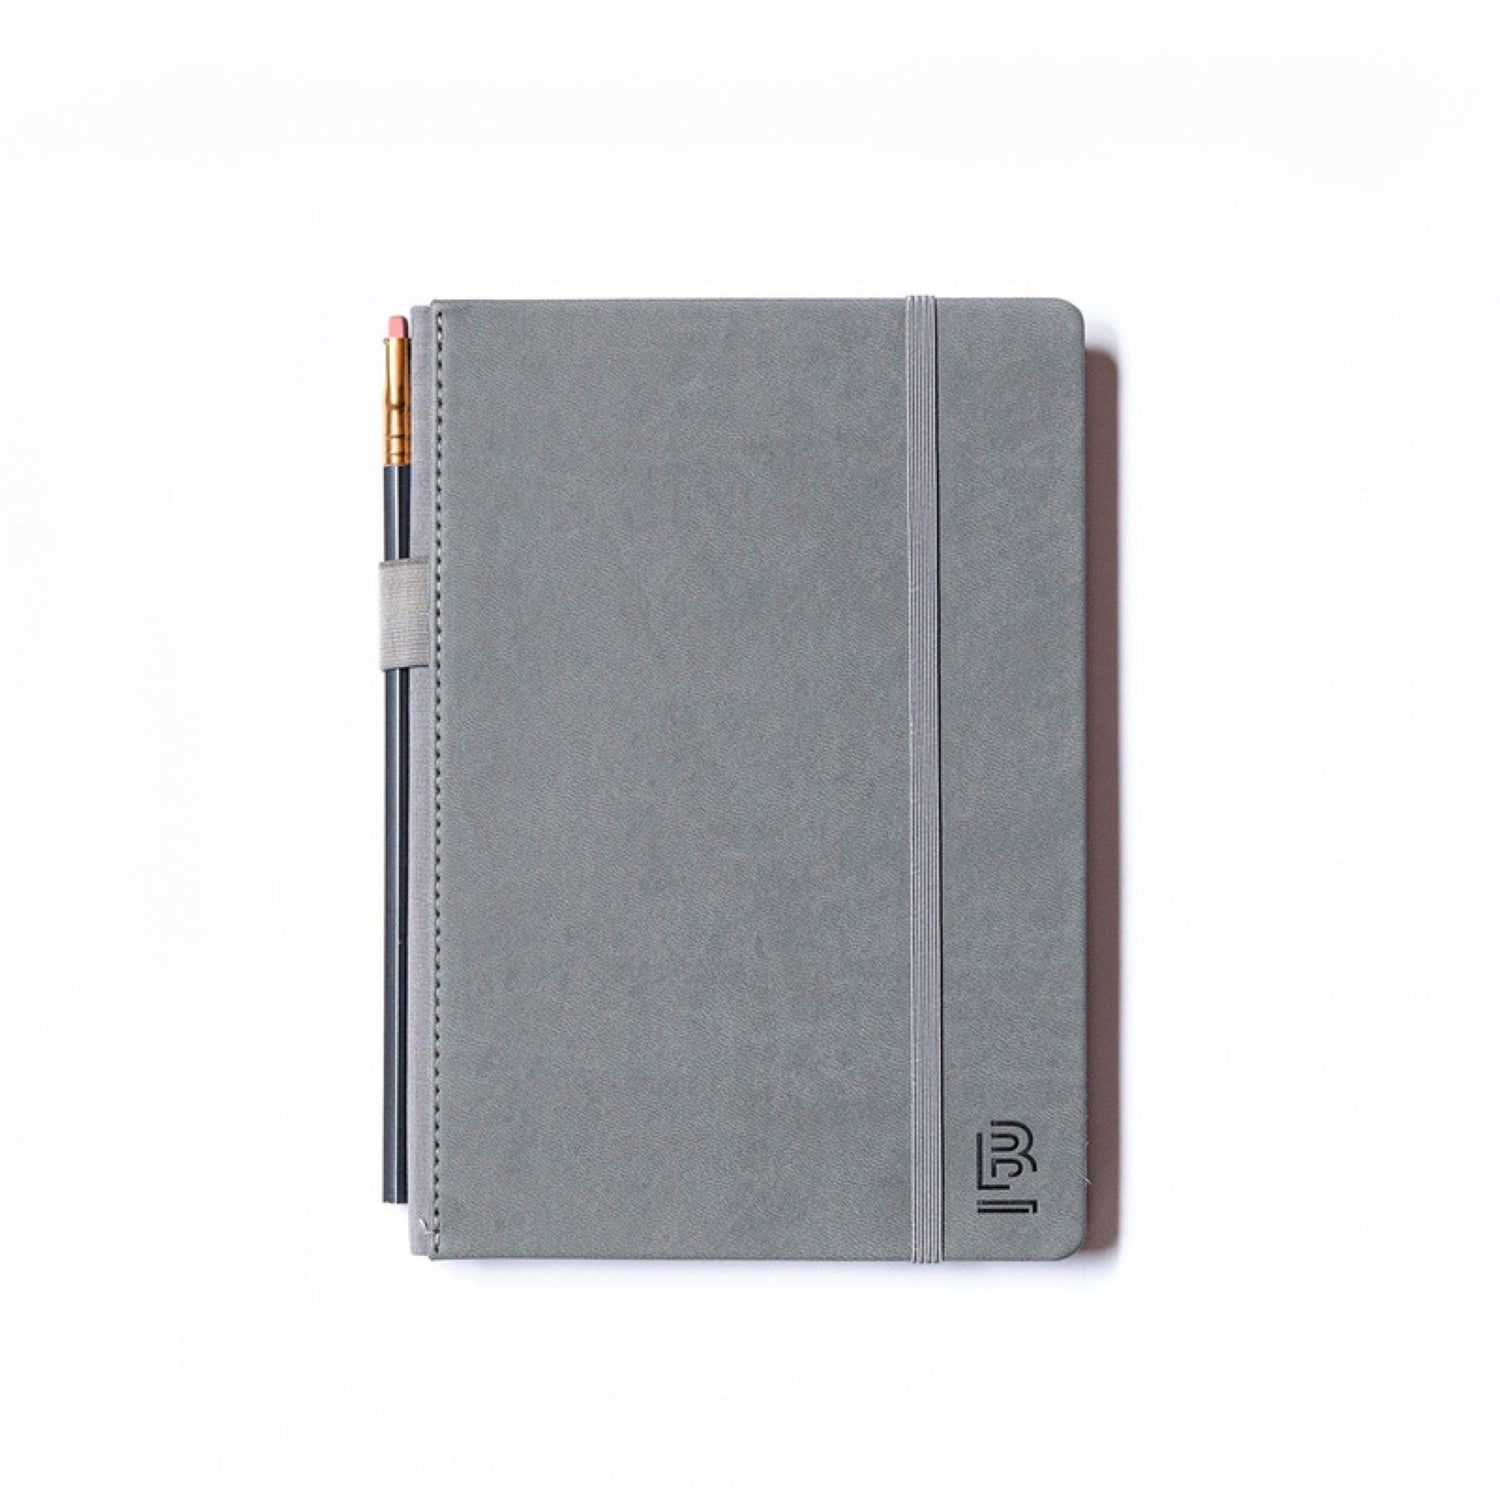 Blackwing Slate Notebook A5 Grey Dot Grid